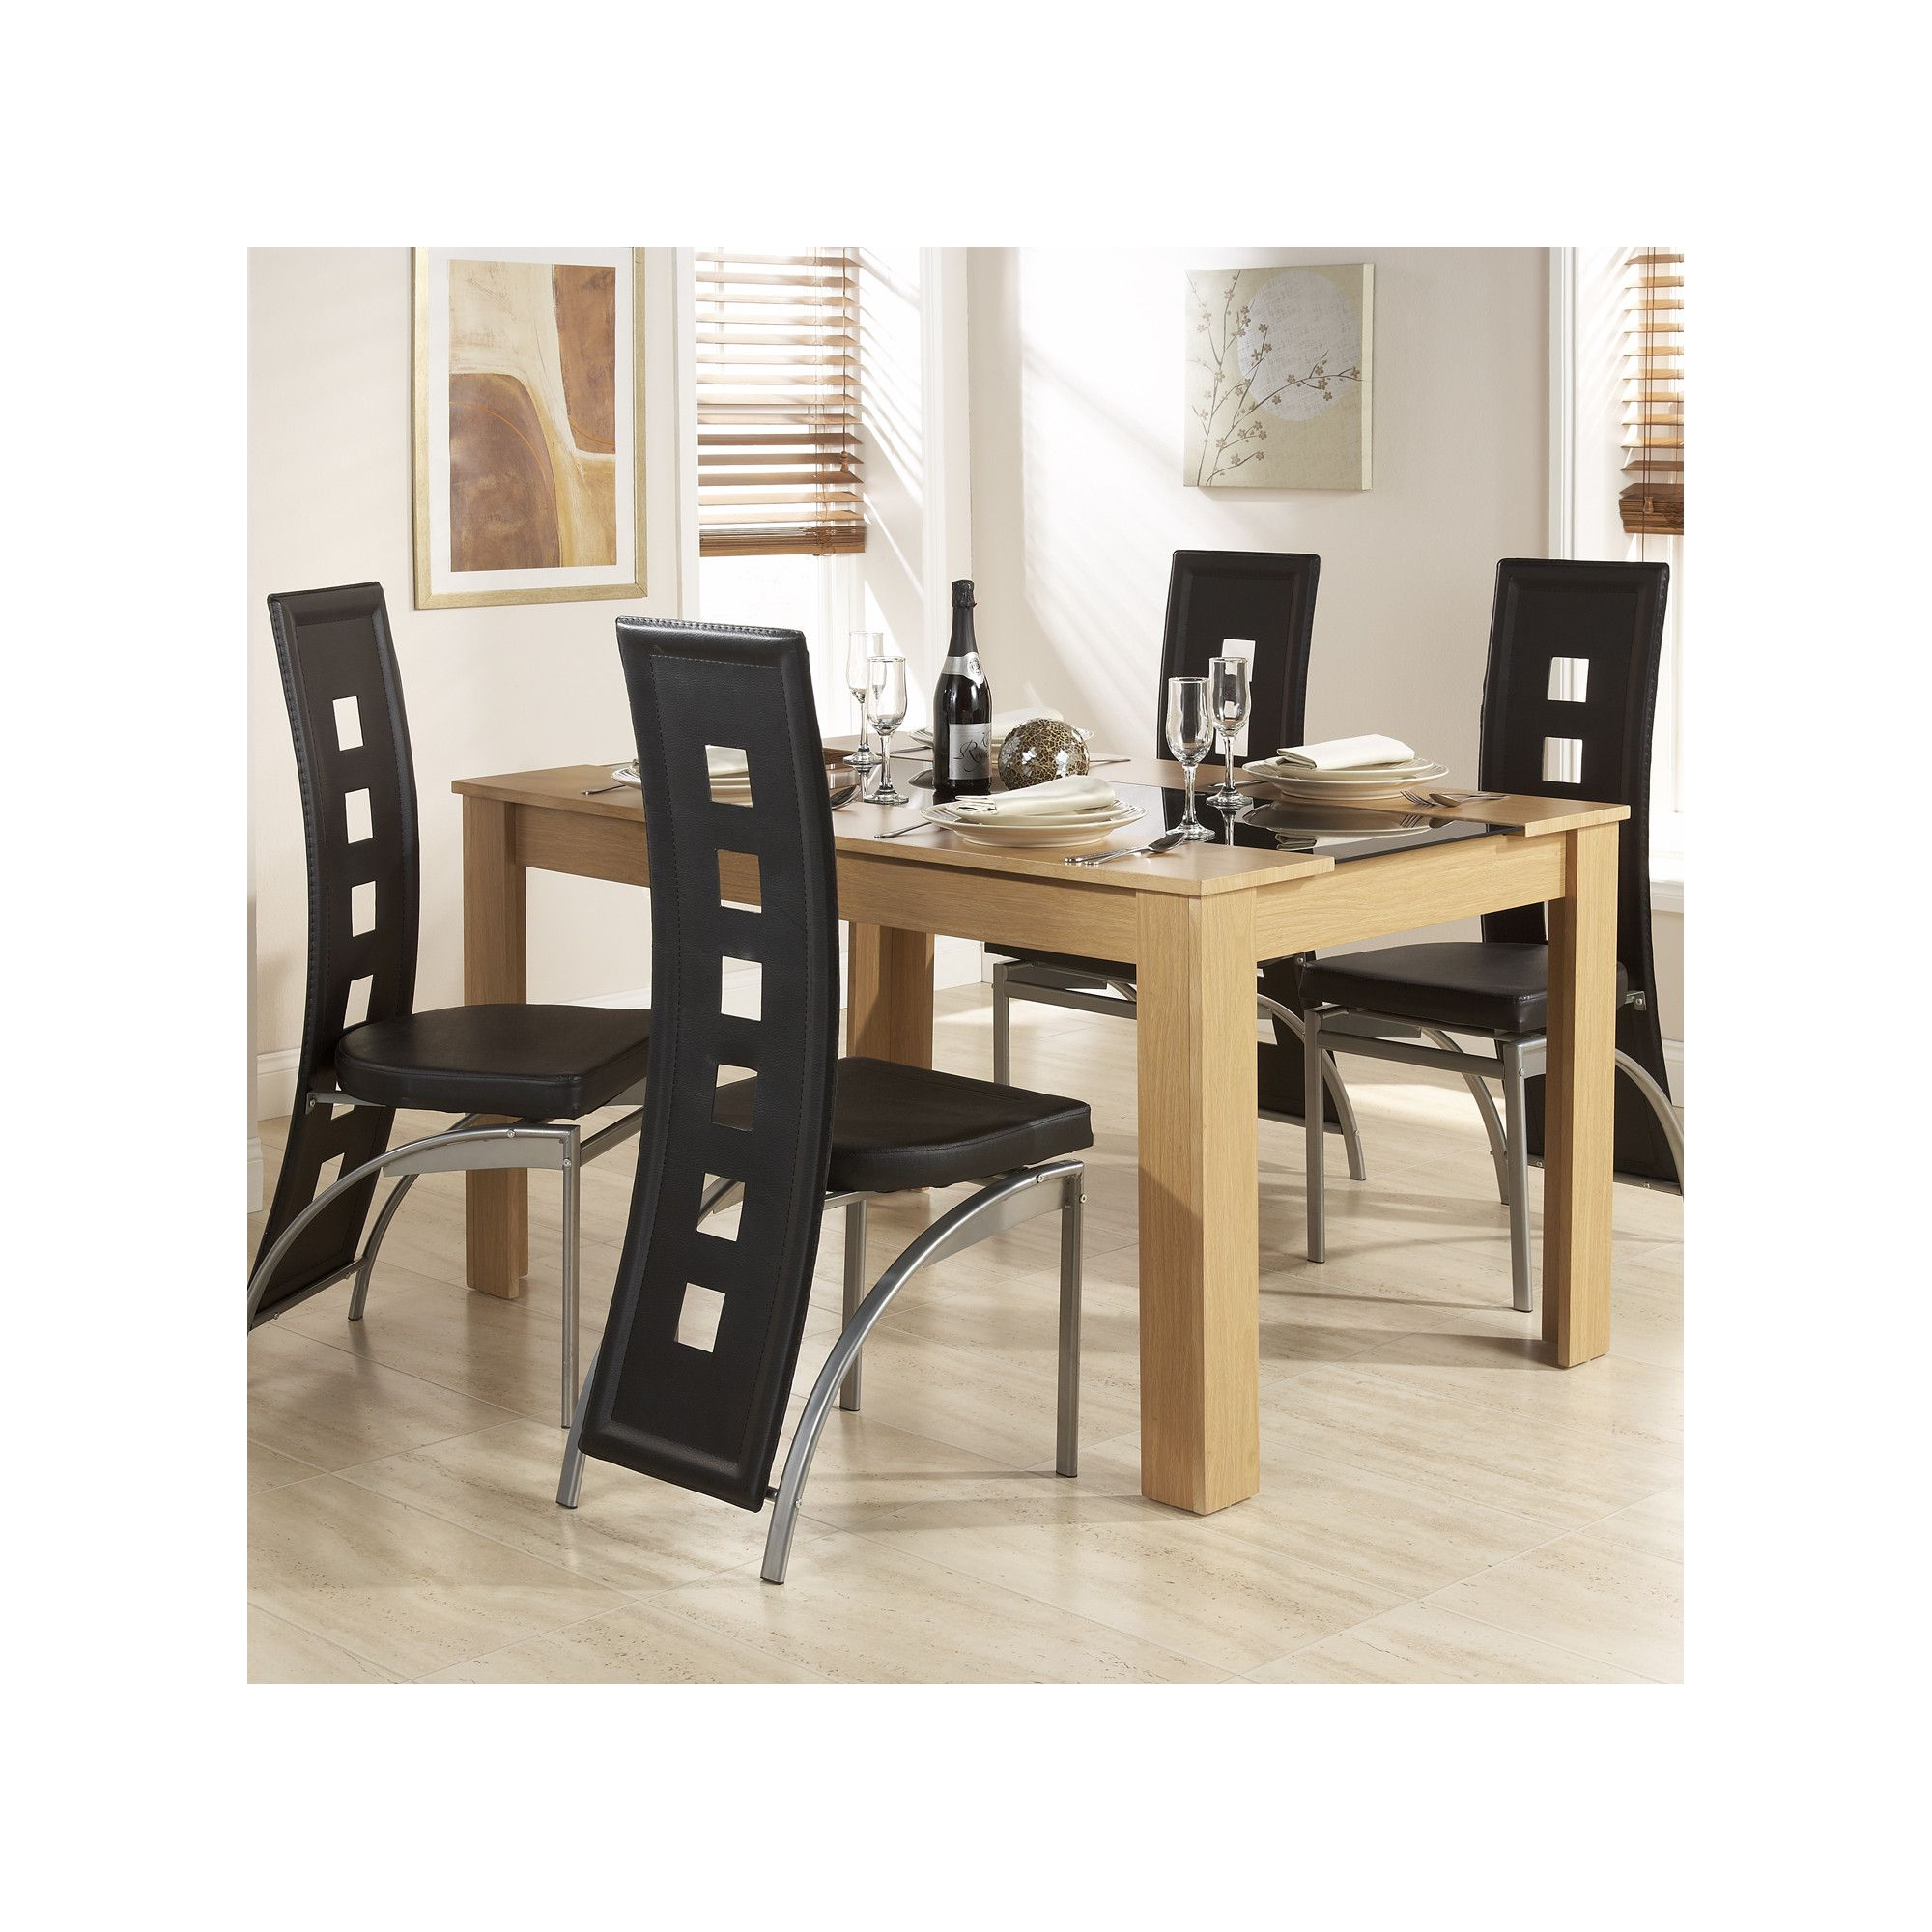 Elements Hudson 5 Piece Dining Set - Oak/Black at Tesco Direct